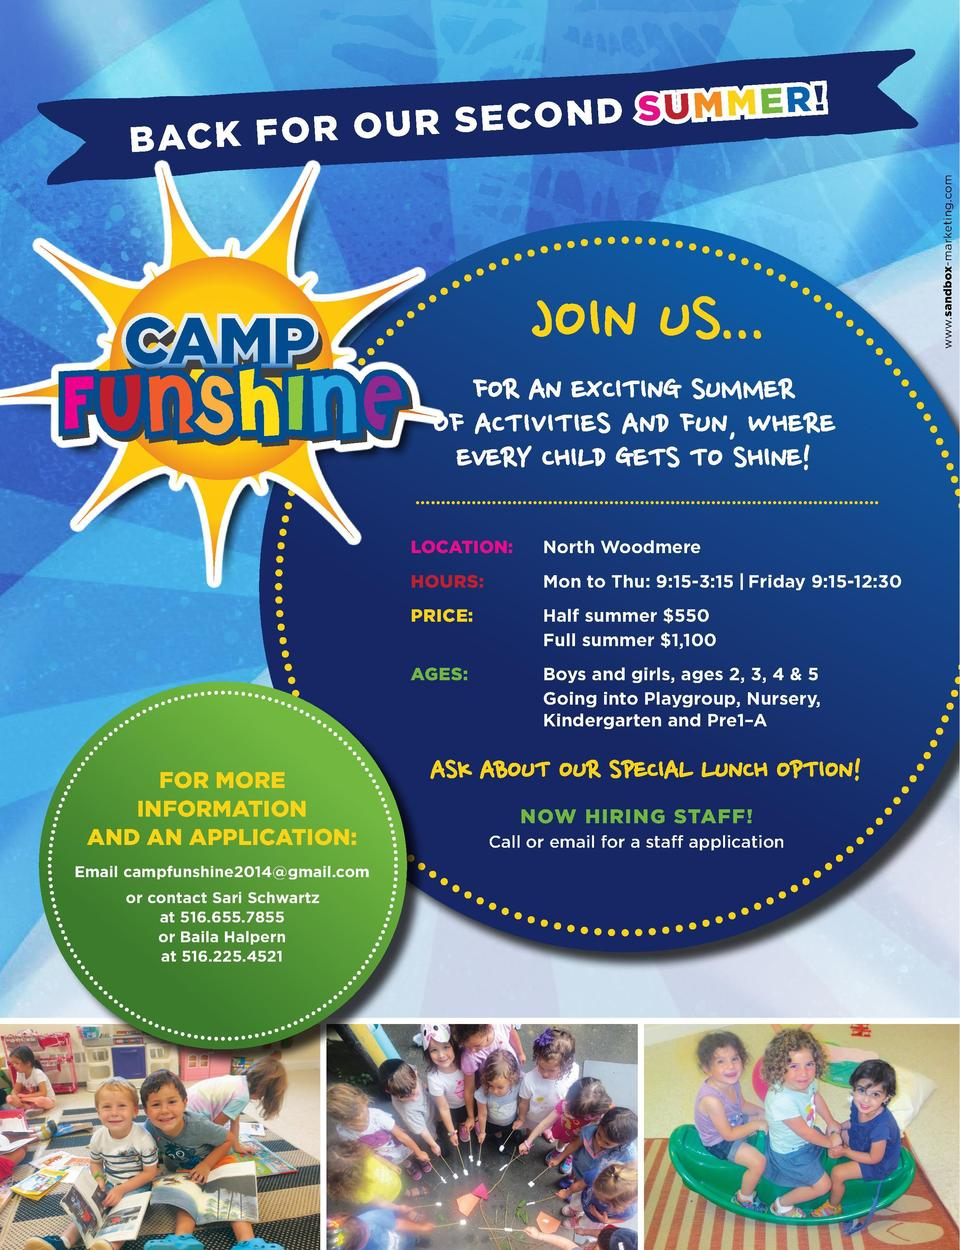 G et a Han dl e on Thin g s    Join us... for An exciting summer of Activities And fun, where every child gets to shine ...